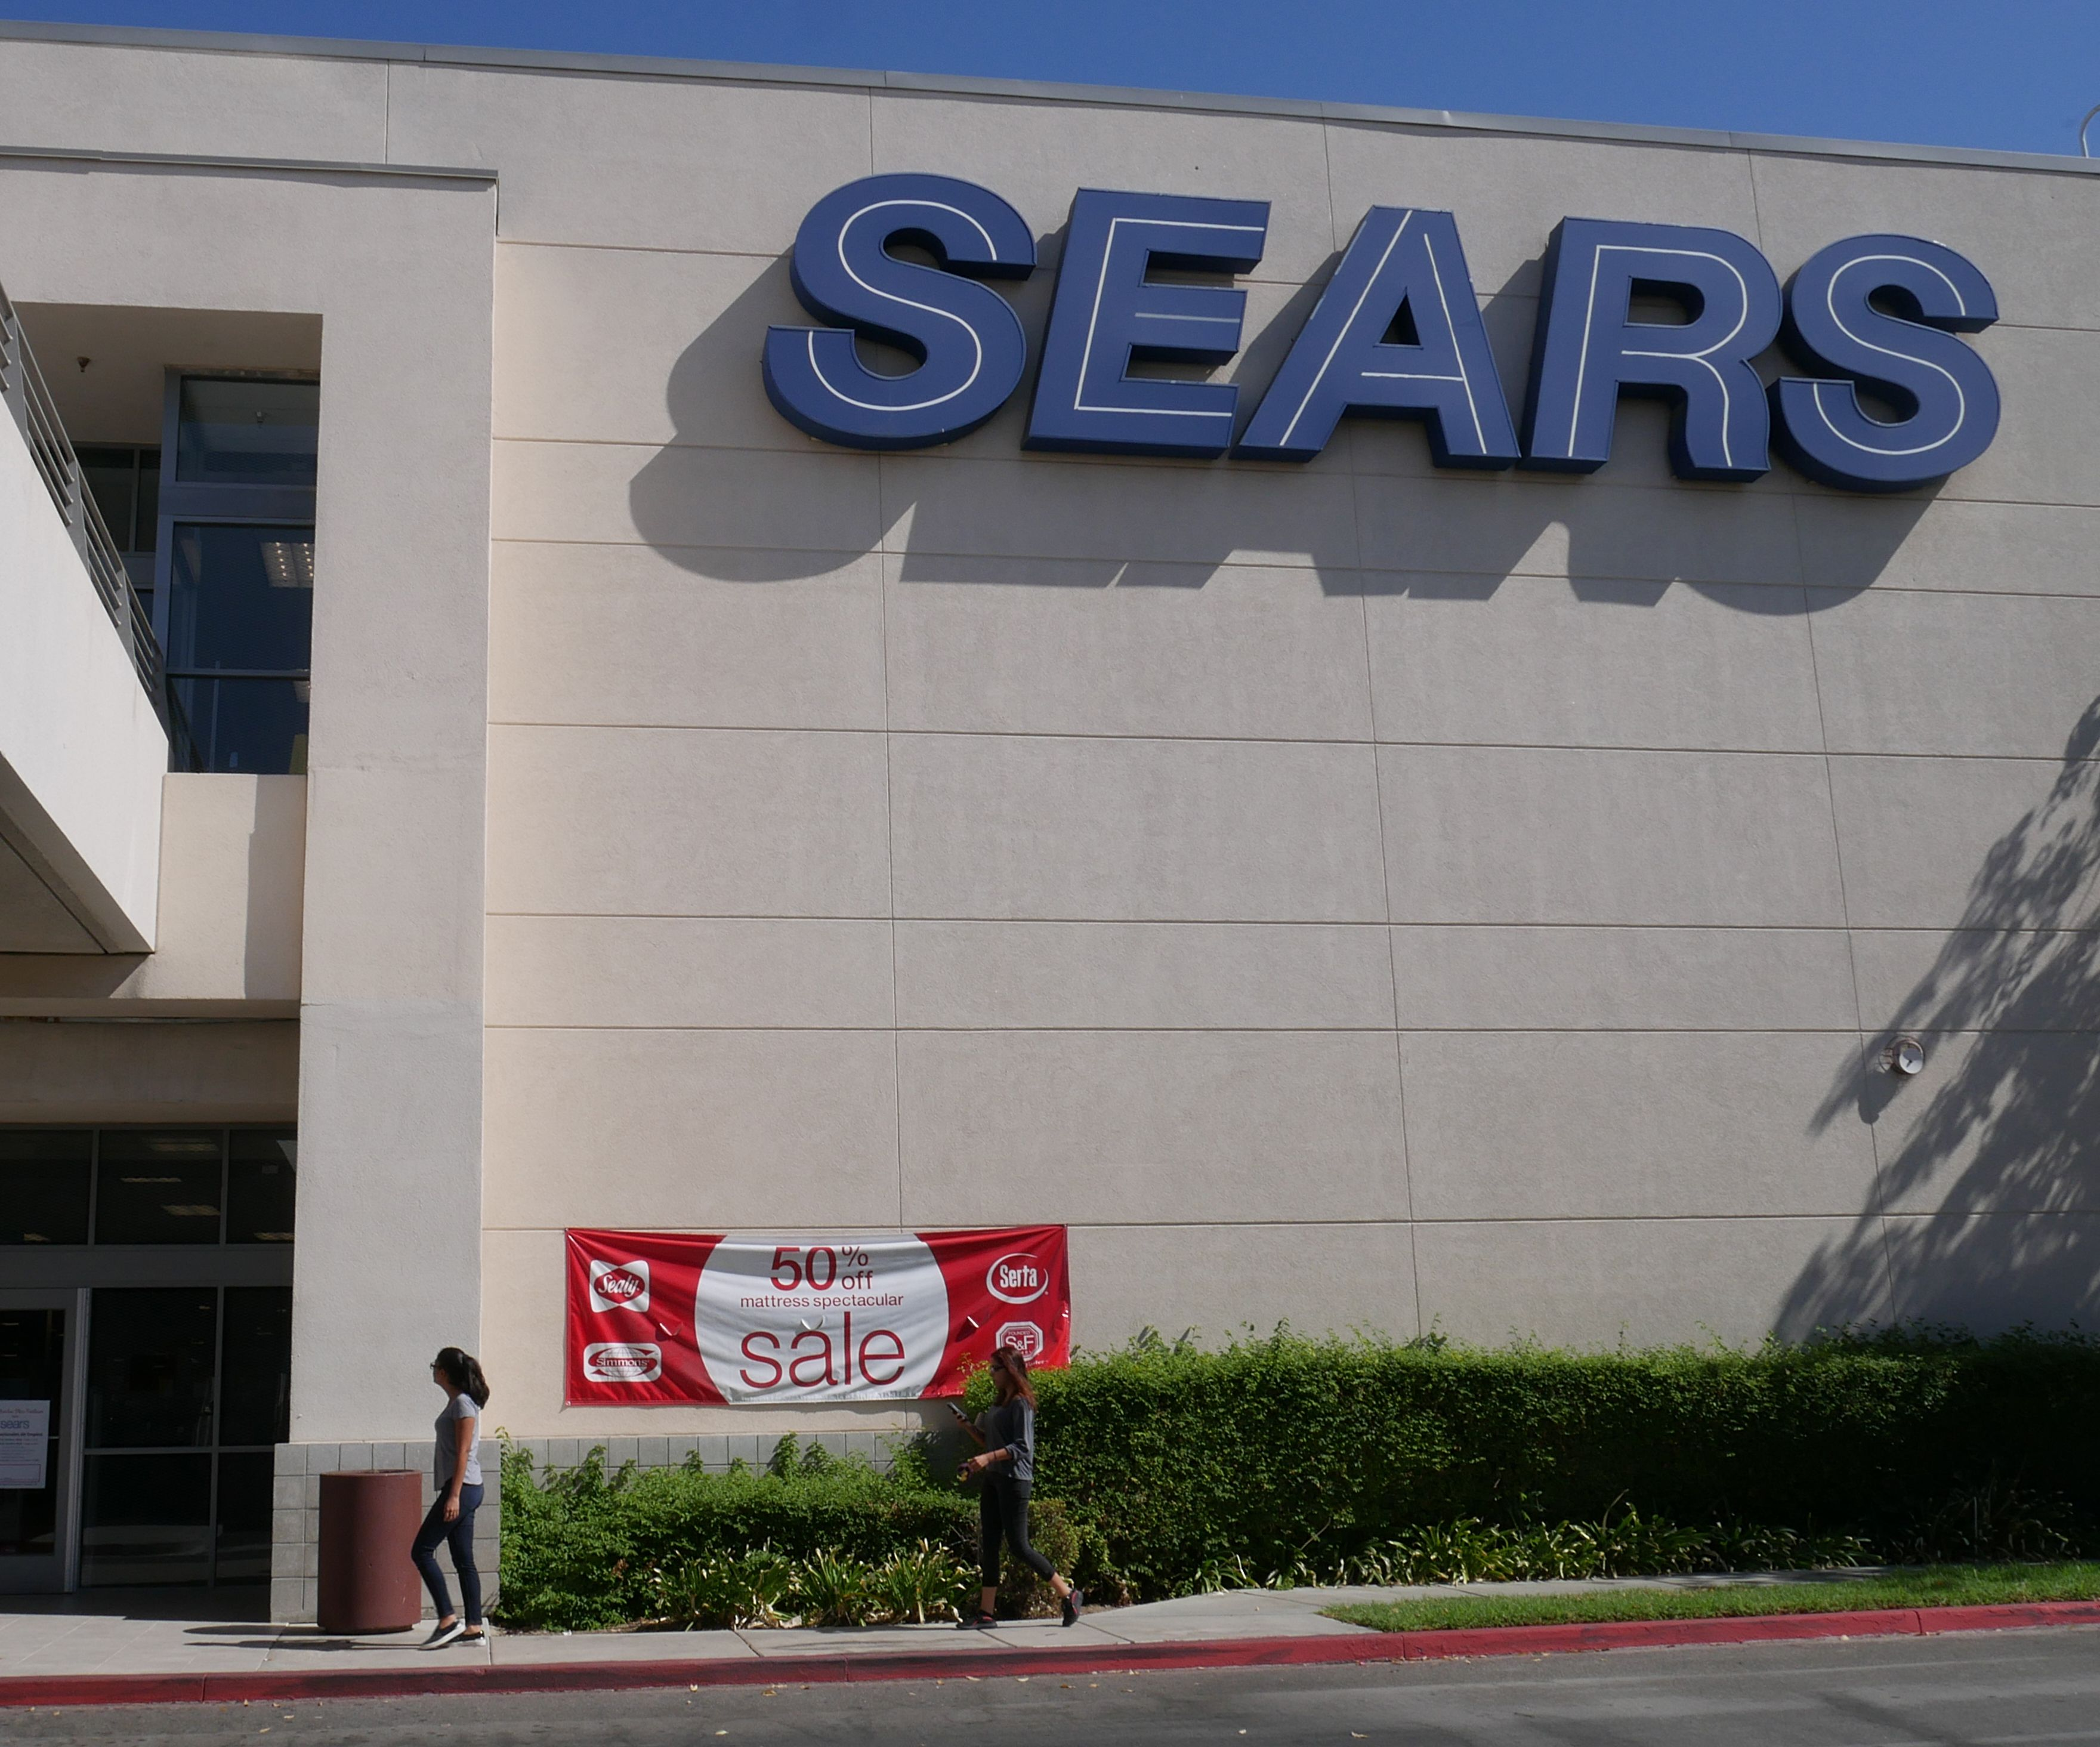 Customers enter a Sears store in Northridge, California, USA, 11 October 2018. The iconic company, which was founded in 1892, is preparing to file for bankruptcy. The bankruptcy could be filed as soon as 14 October 2018 and would cause one of the biggest pension defaults in US history.Sears prepares to file for bankruptcy in the USA, Northridge - 11 Oct 2018